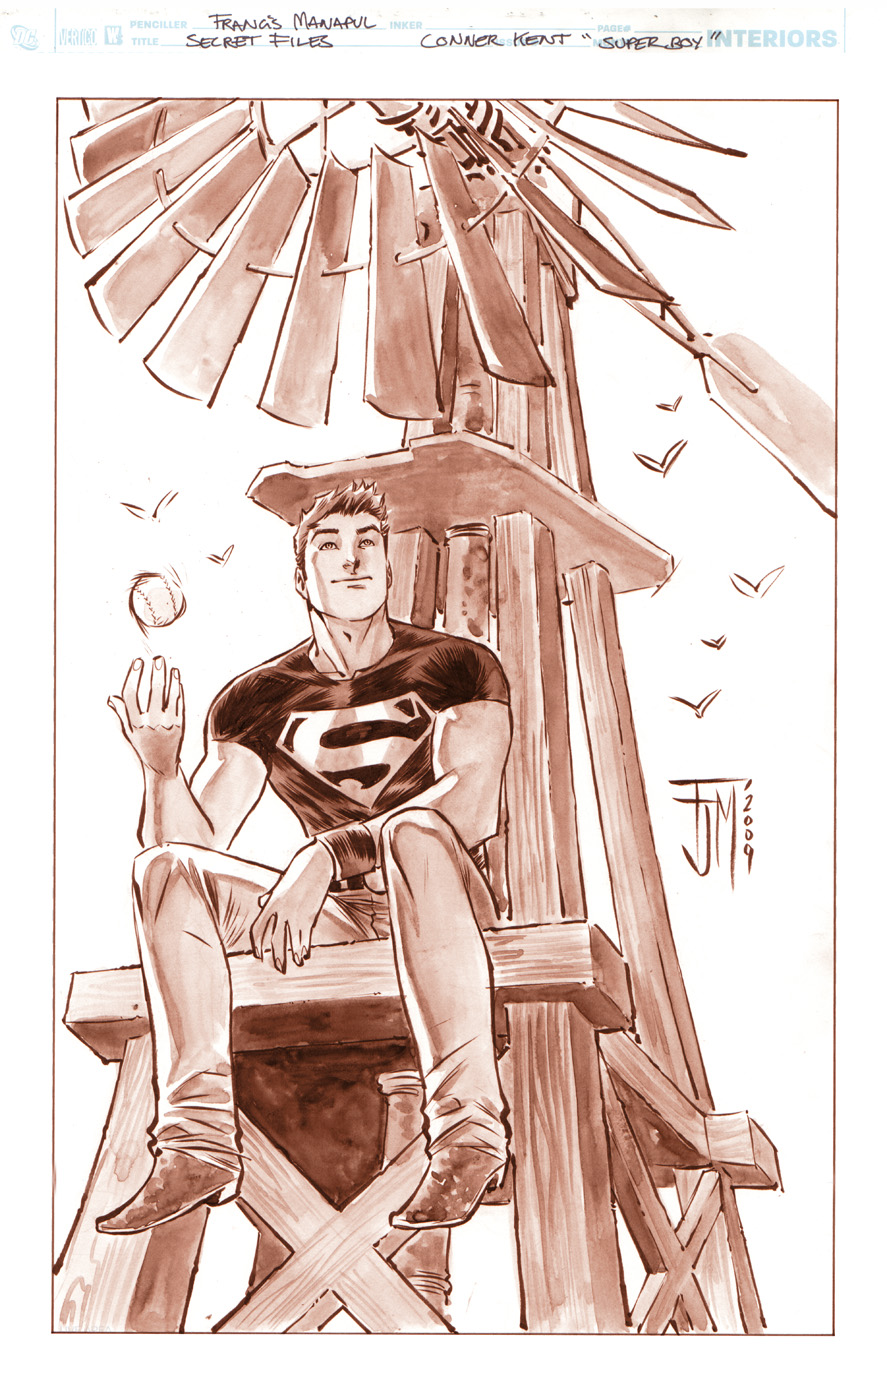 [secret_files_FINAL_superboy_small.jpg]